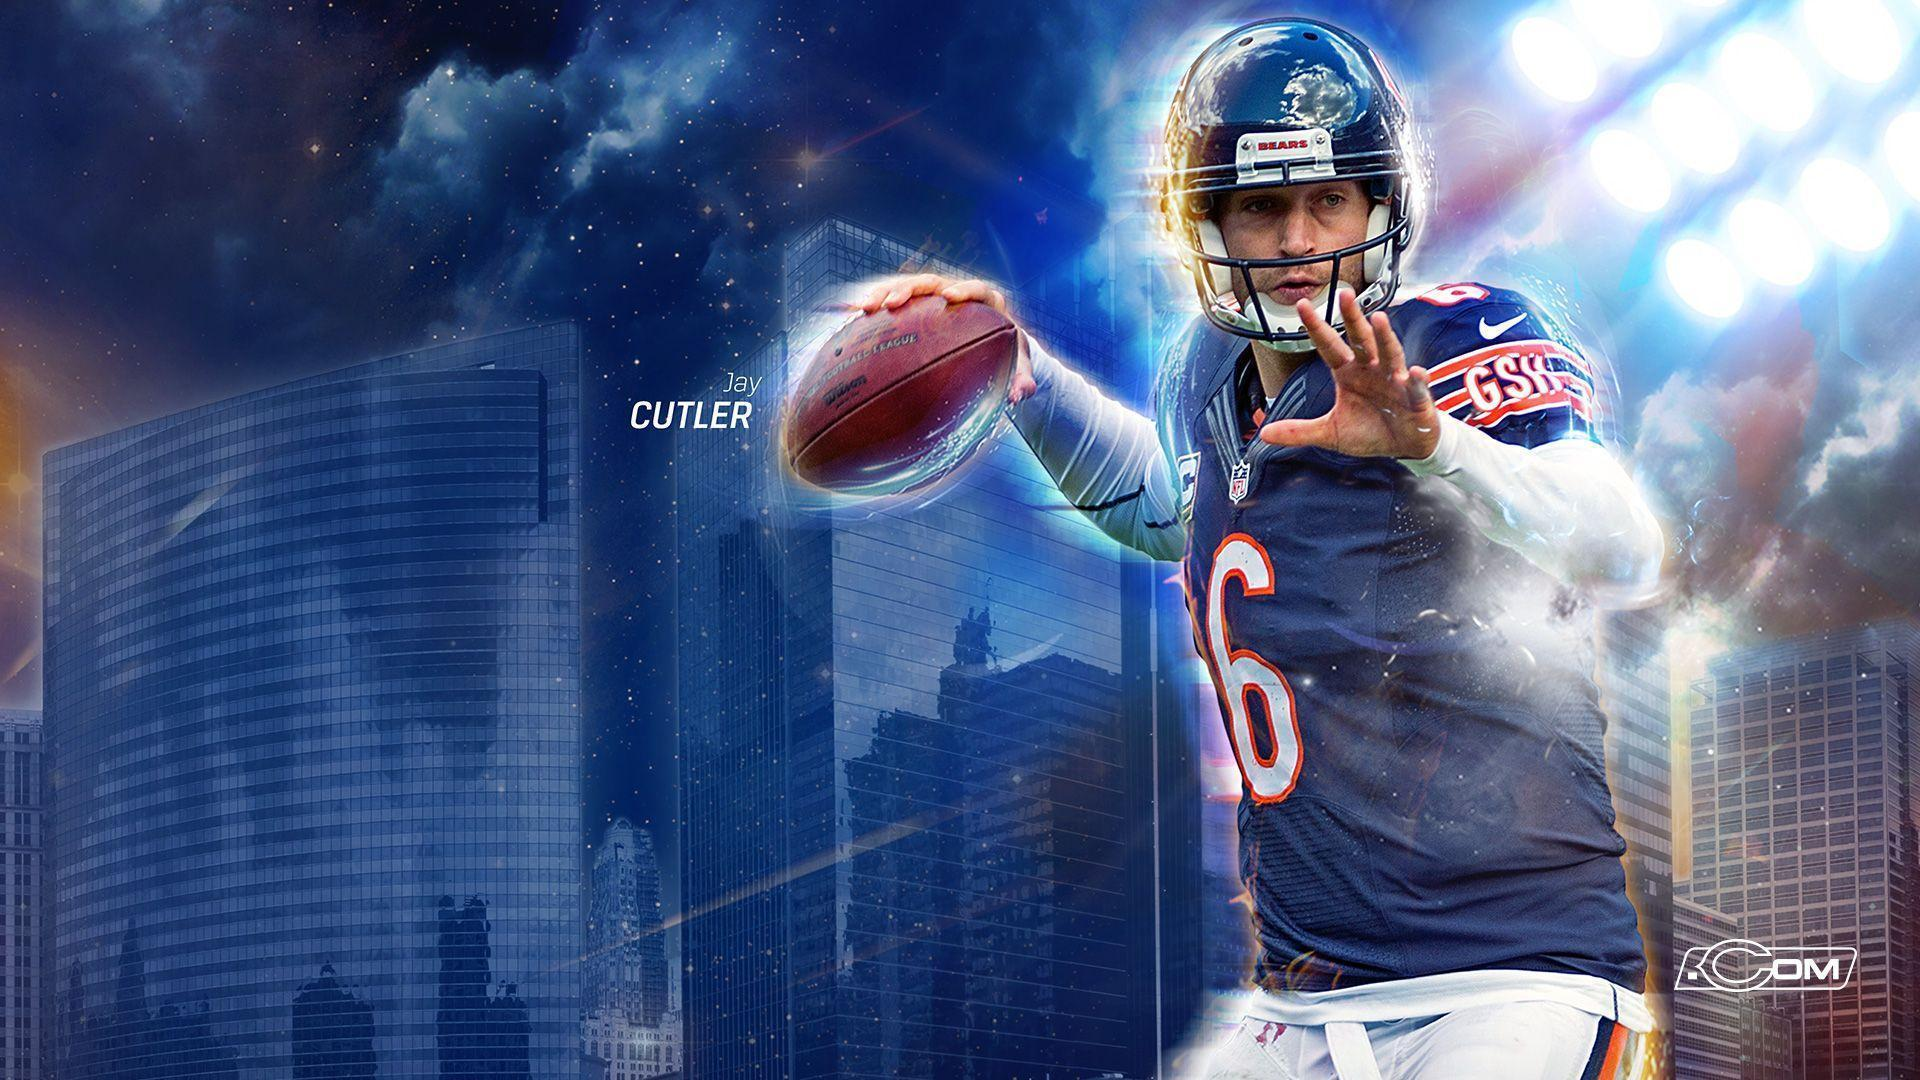 Jay Cutler Football Wallpapers